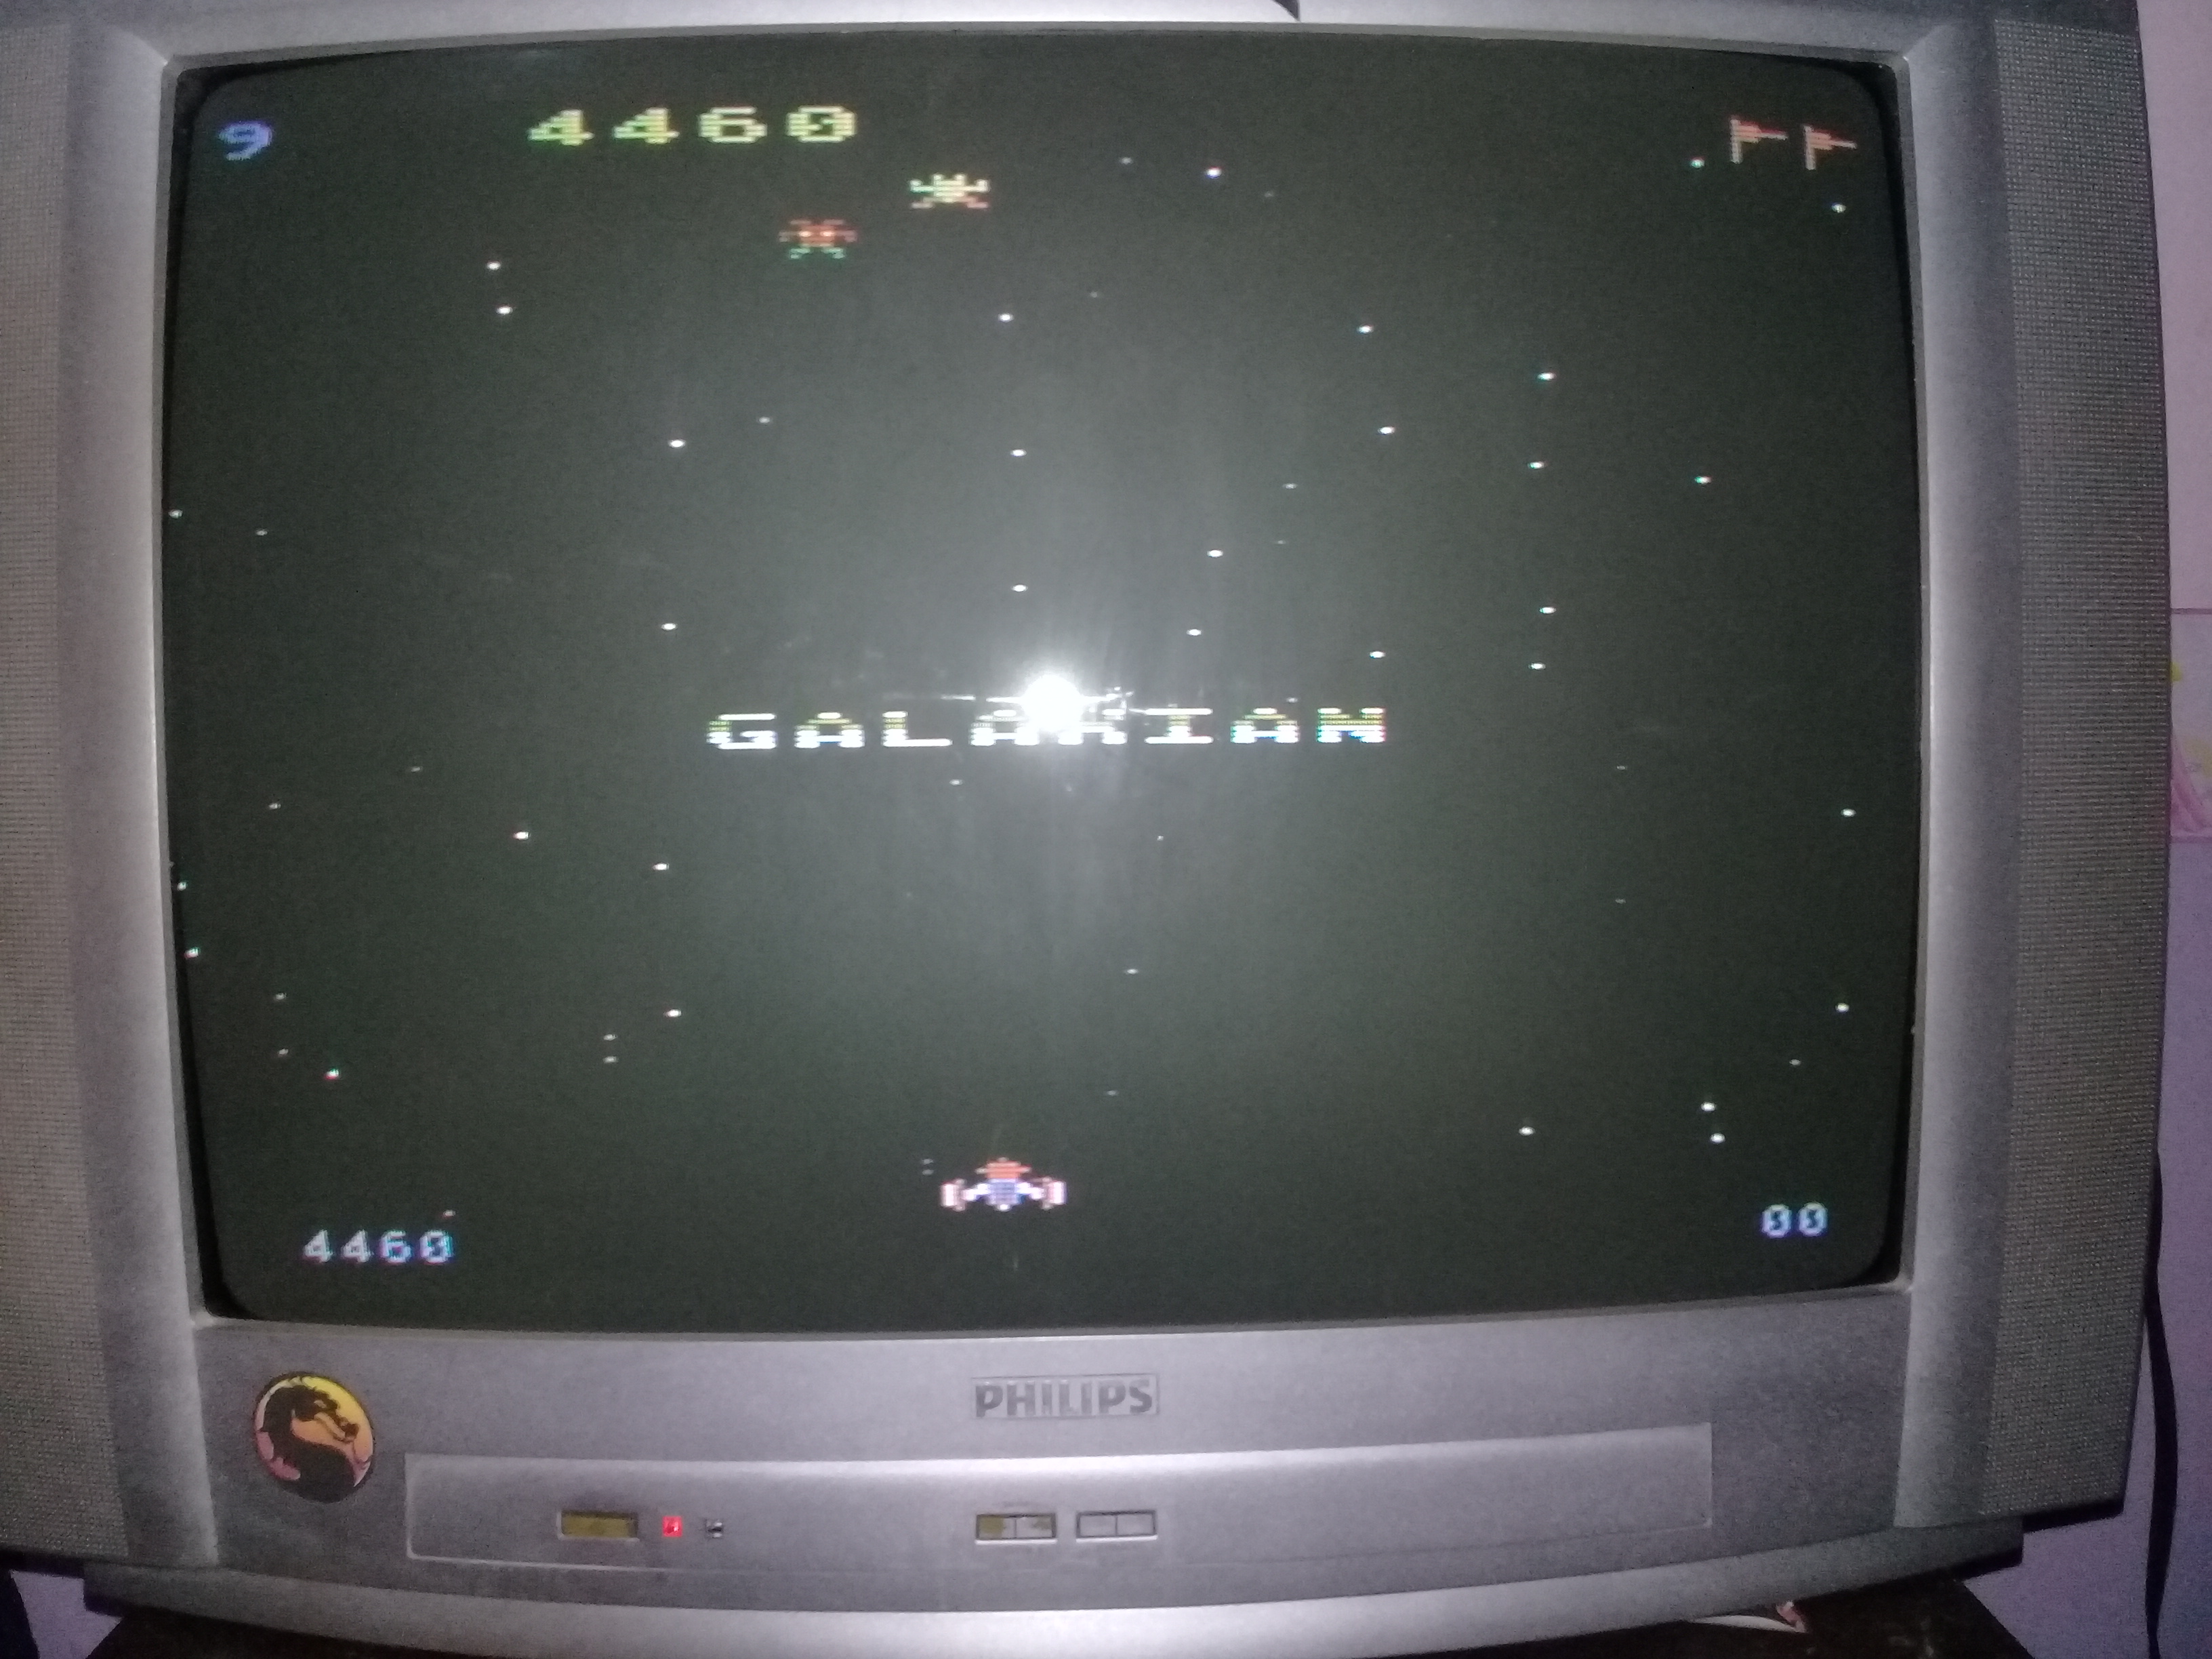 omargeddon: Galaxian [Difficulty: 9] (Atari 400/800/XL/XE) 4,460 points on 2020-03-31 01:26:54